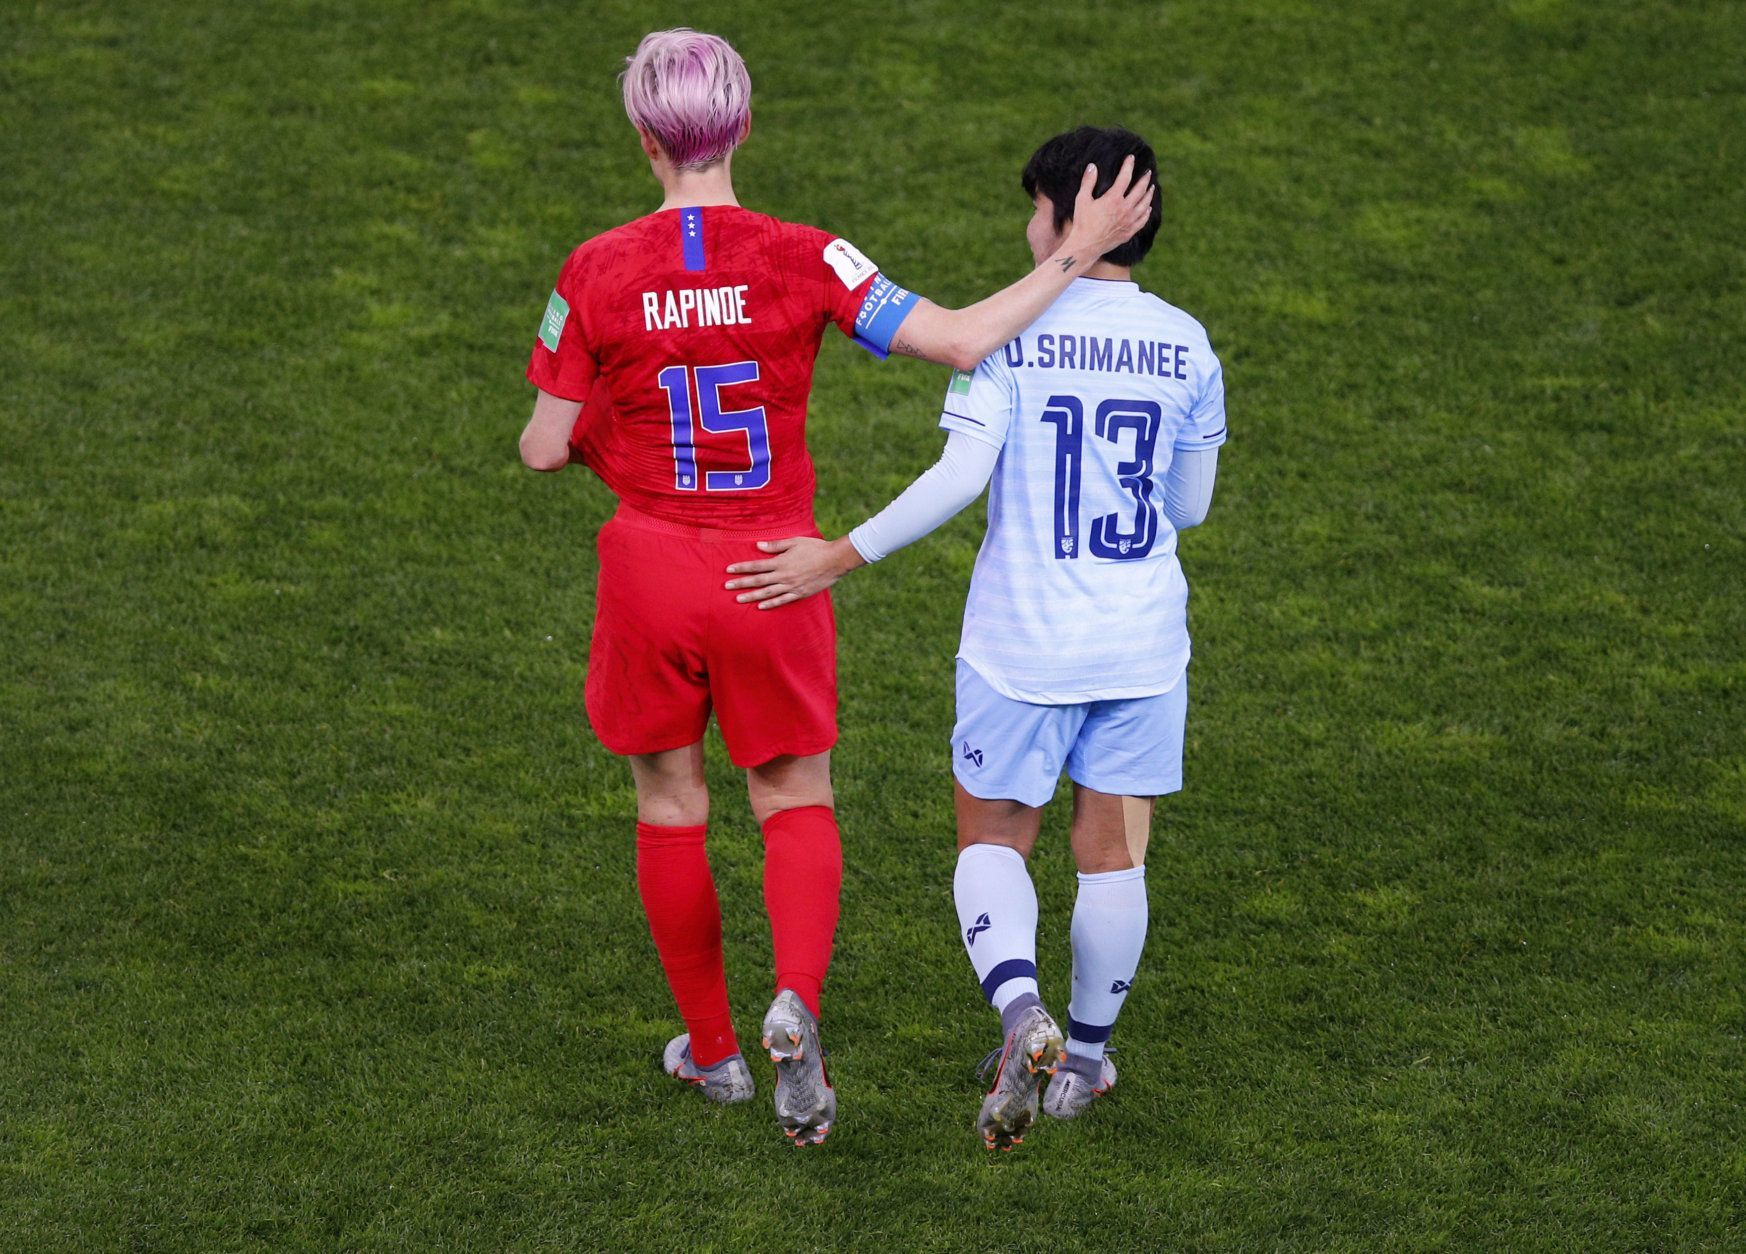 Thailand's Orathai Srimanee congratulates United States' Megan Rapinoe, left, after their Women's World Cup Group F soccer match between the United States and Thailand at the Stade Auguste-Delaune in Reims, France, Tuesday, June 11, 2019. The US defeated Thailand 13-0.(AP Photo/Francois Mori)